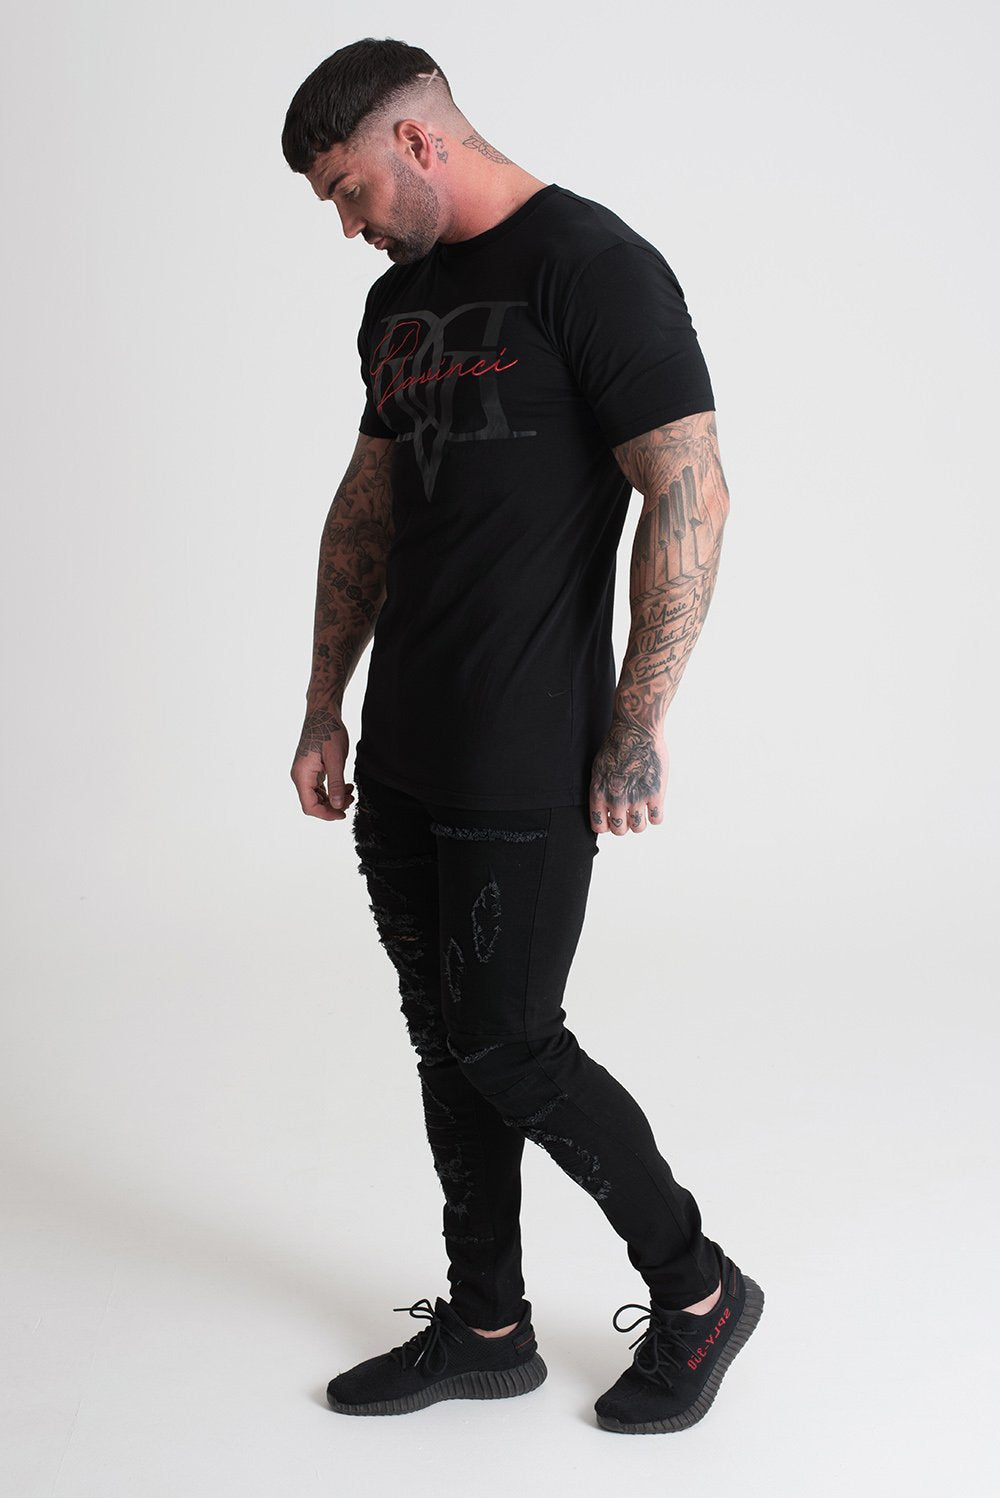 Colab Print & Embroidery Tee Black